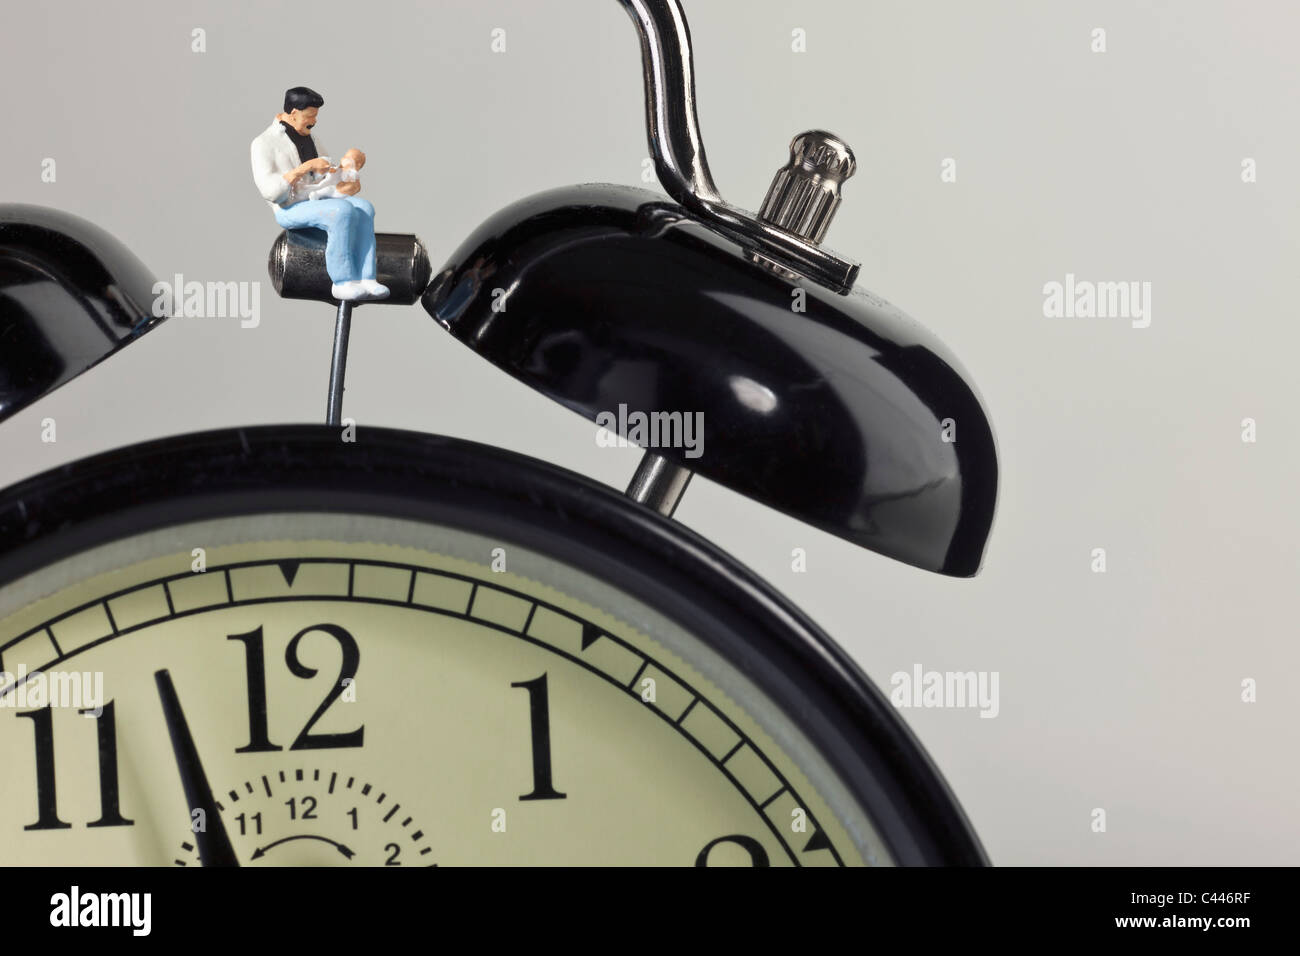 A miniature father figurine holding his baby while sitting on an alarm clock - Stock Image